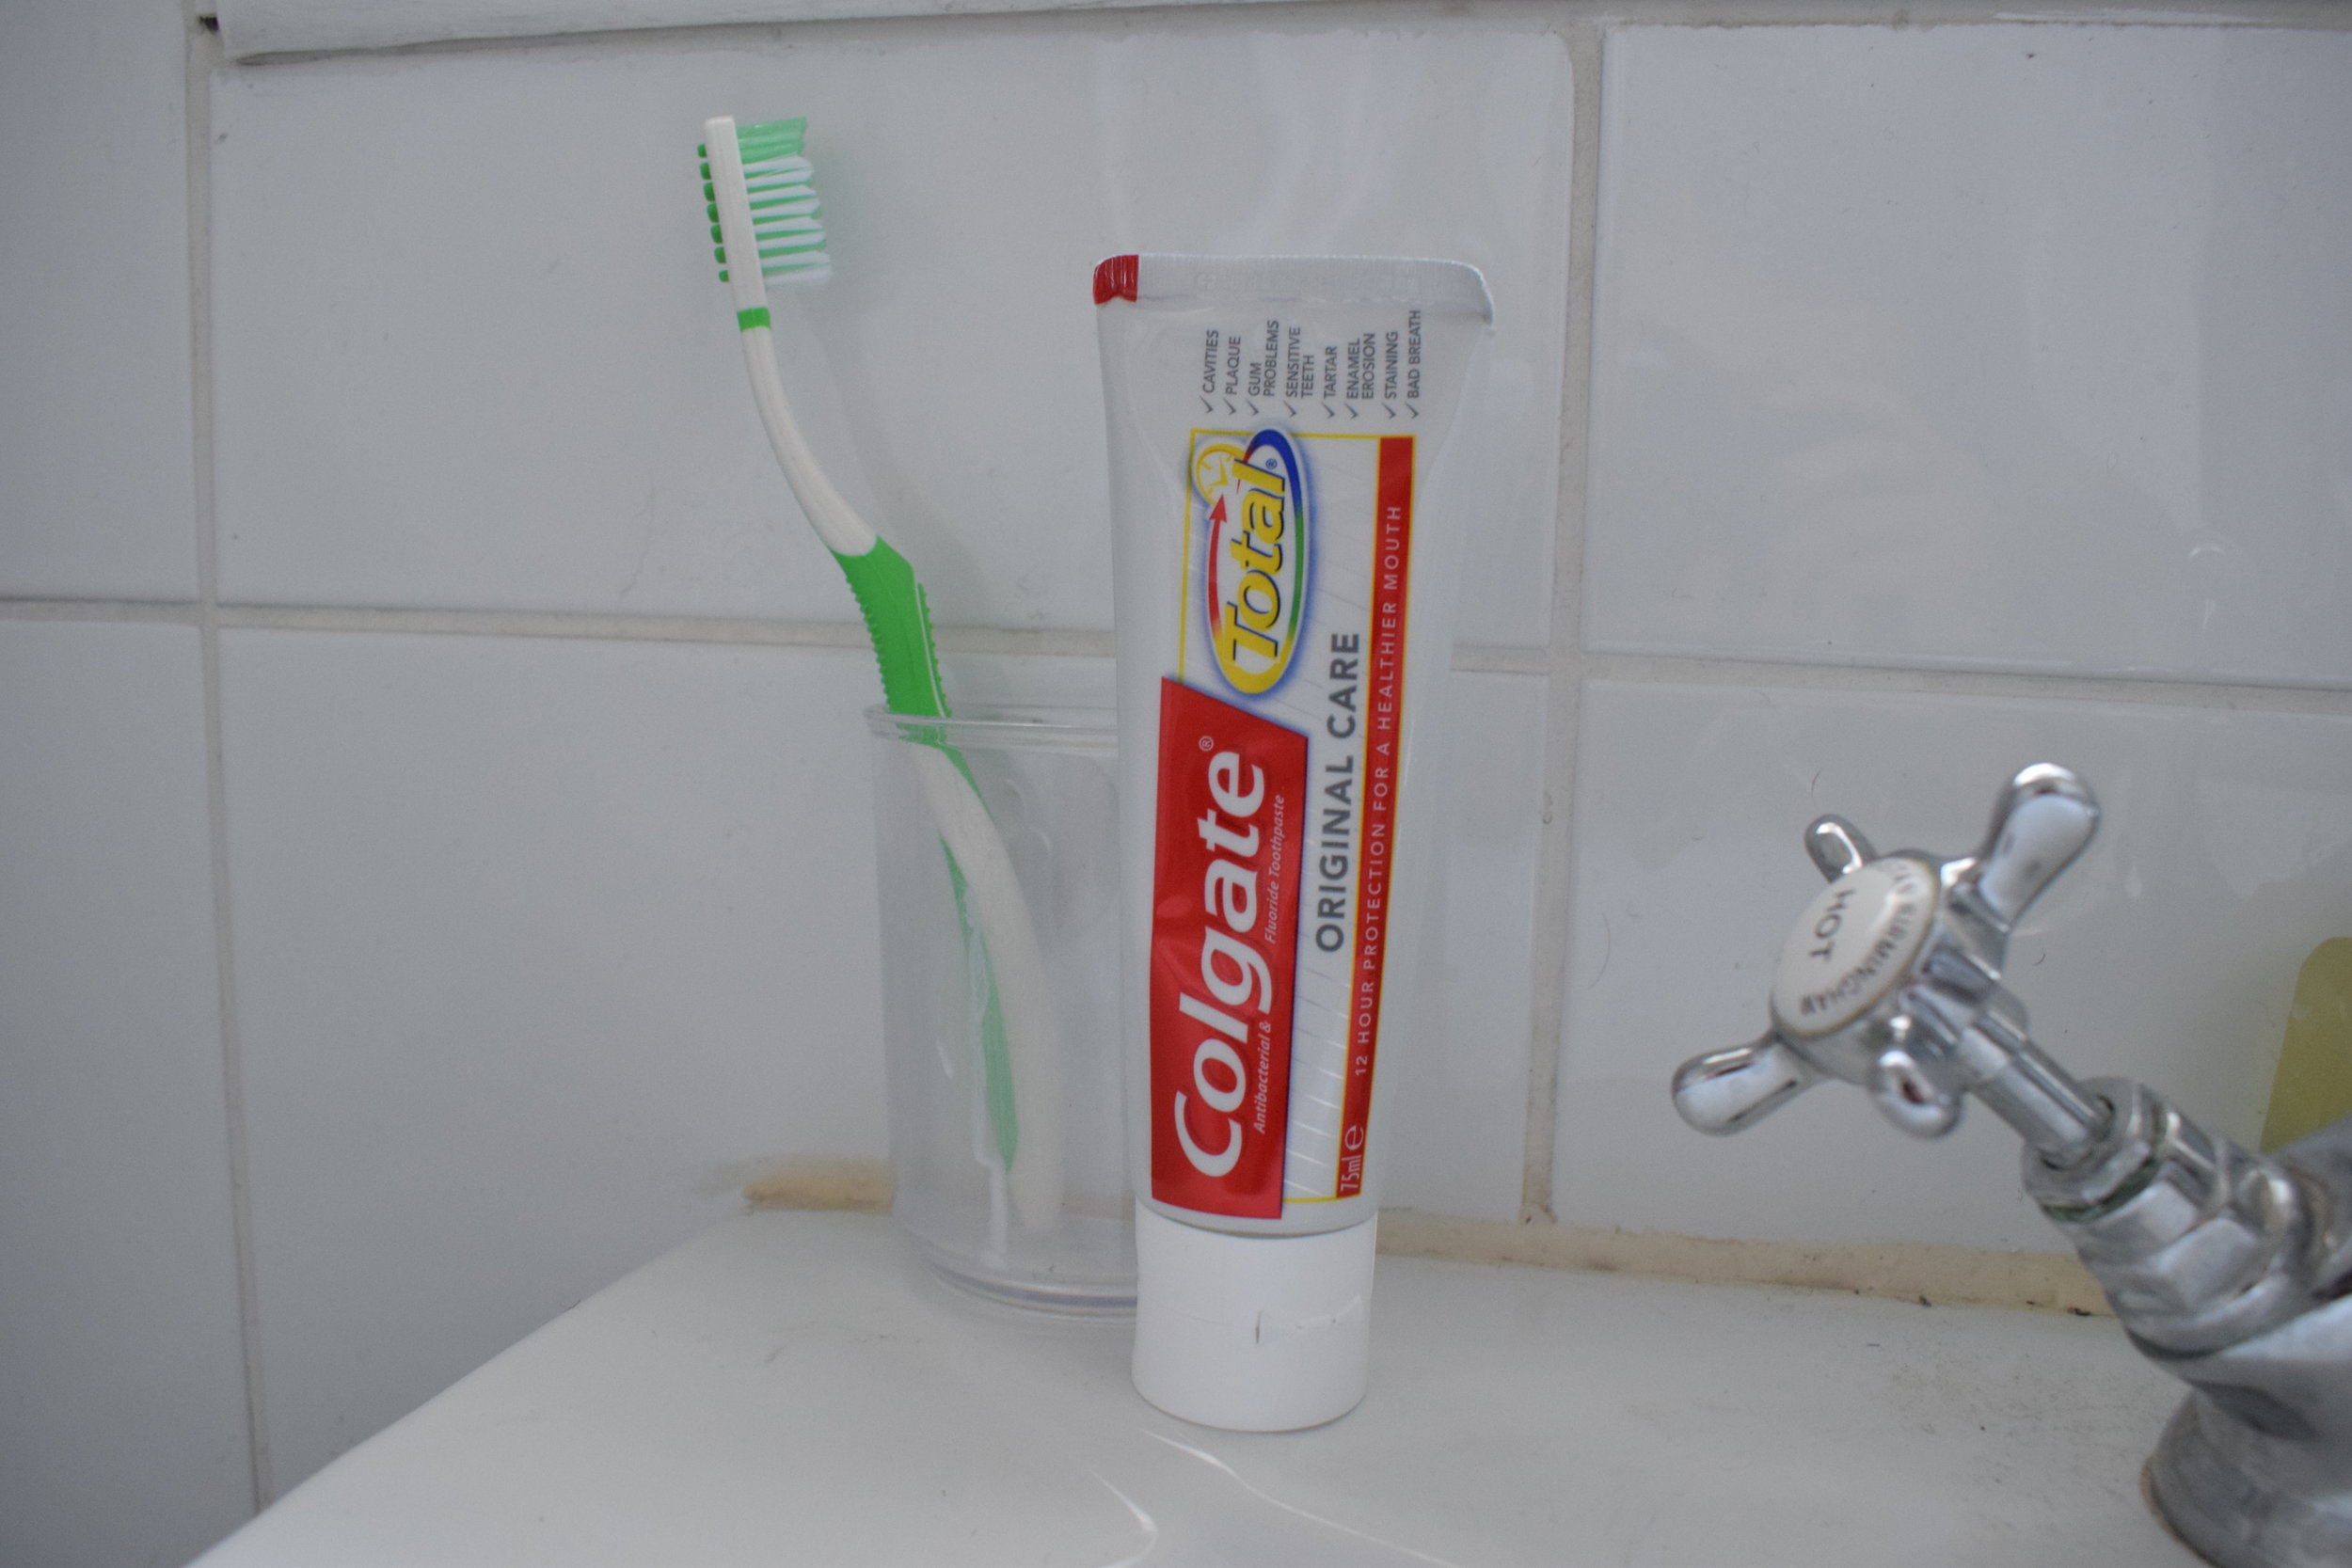 Toothbrush and Colgate Total original care toothpaste